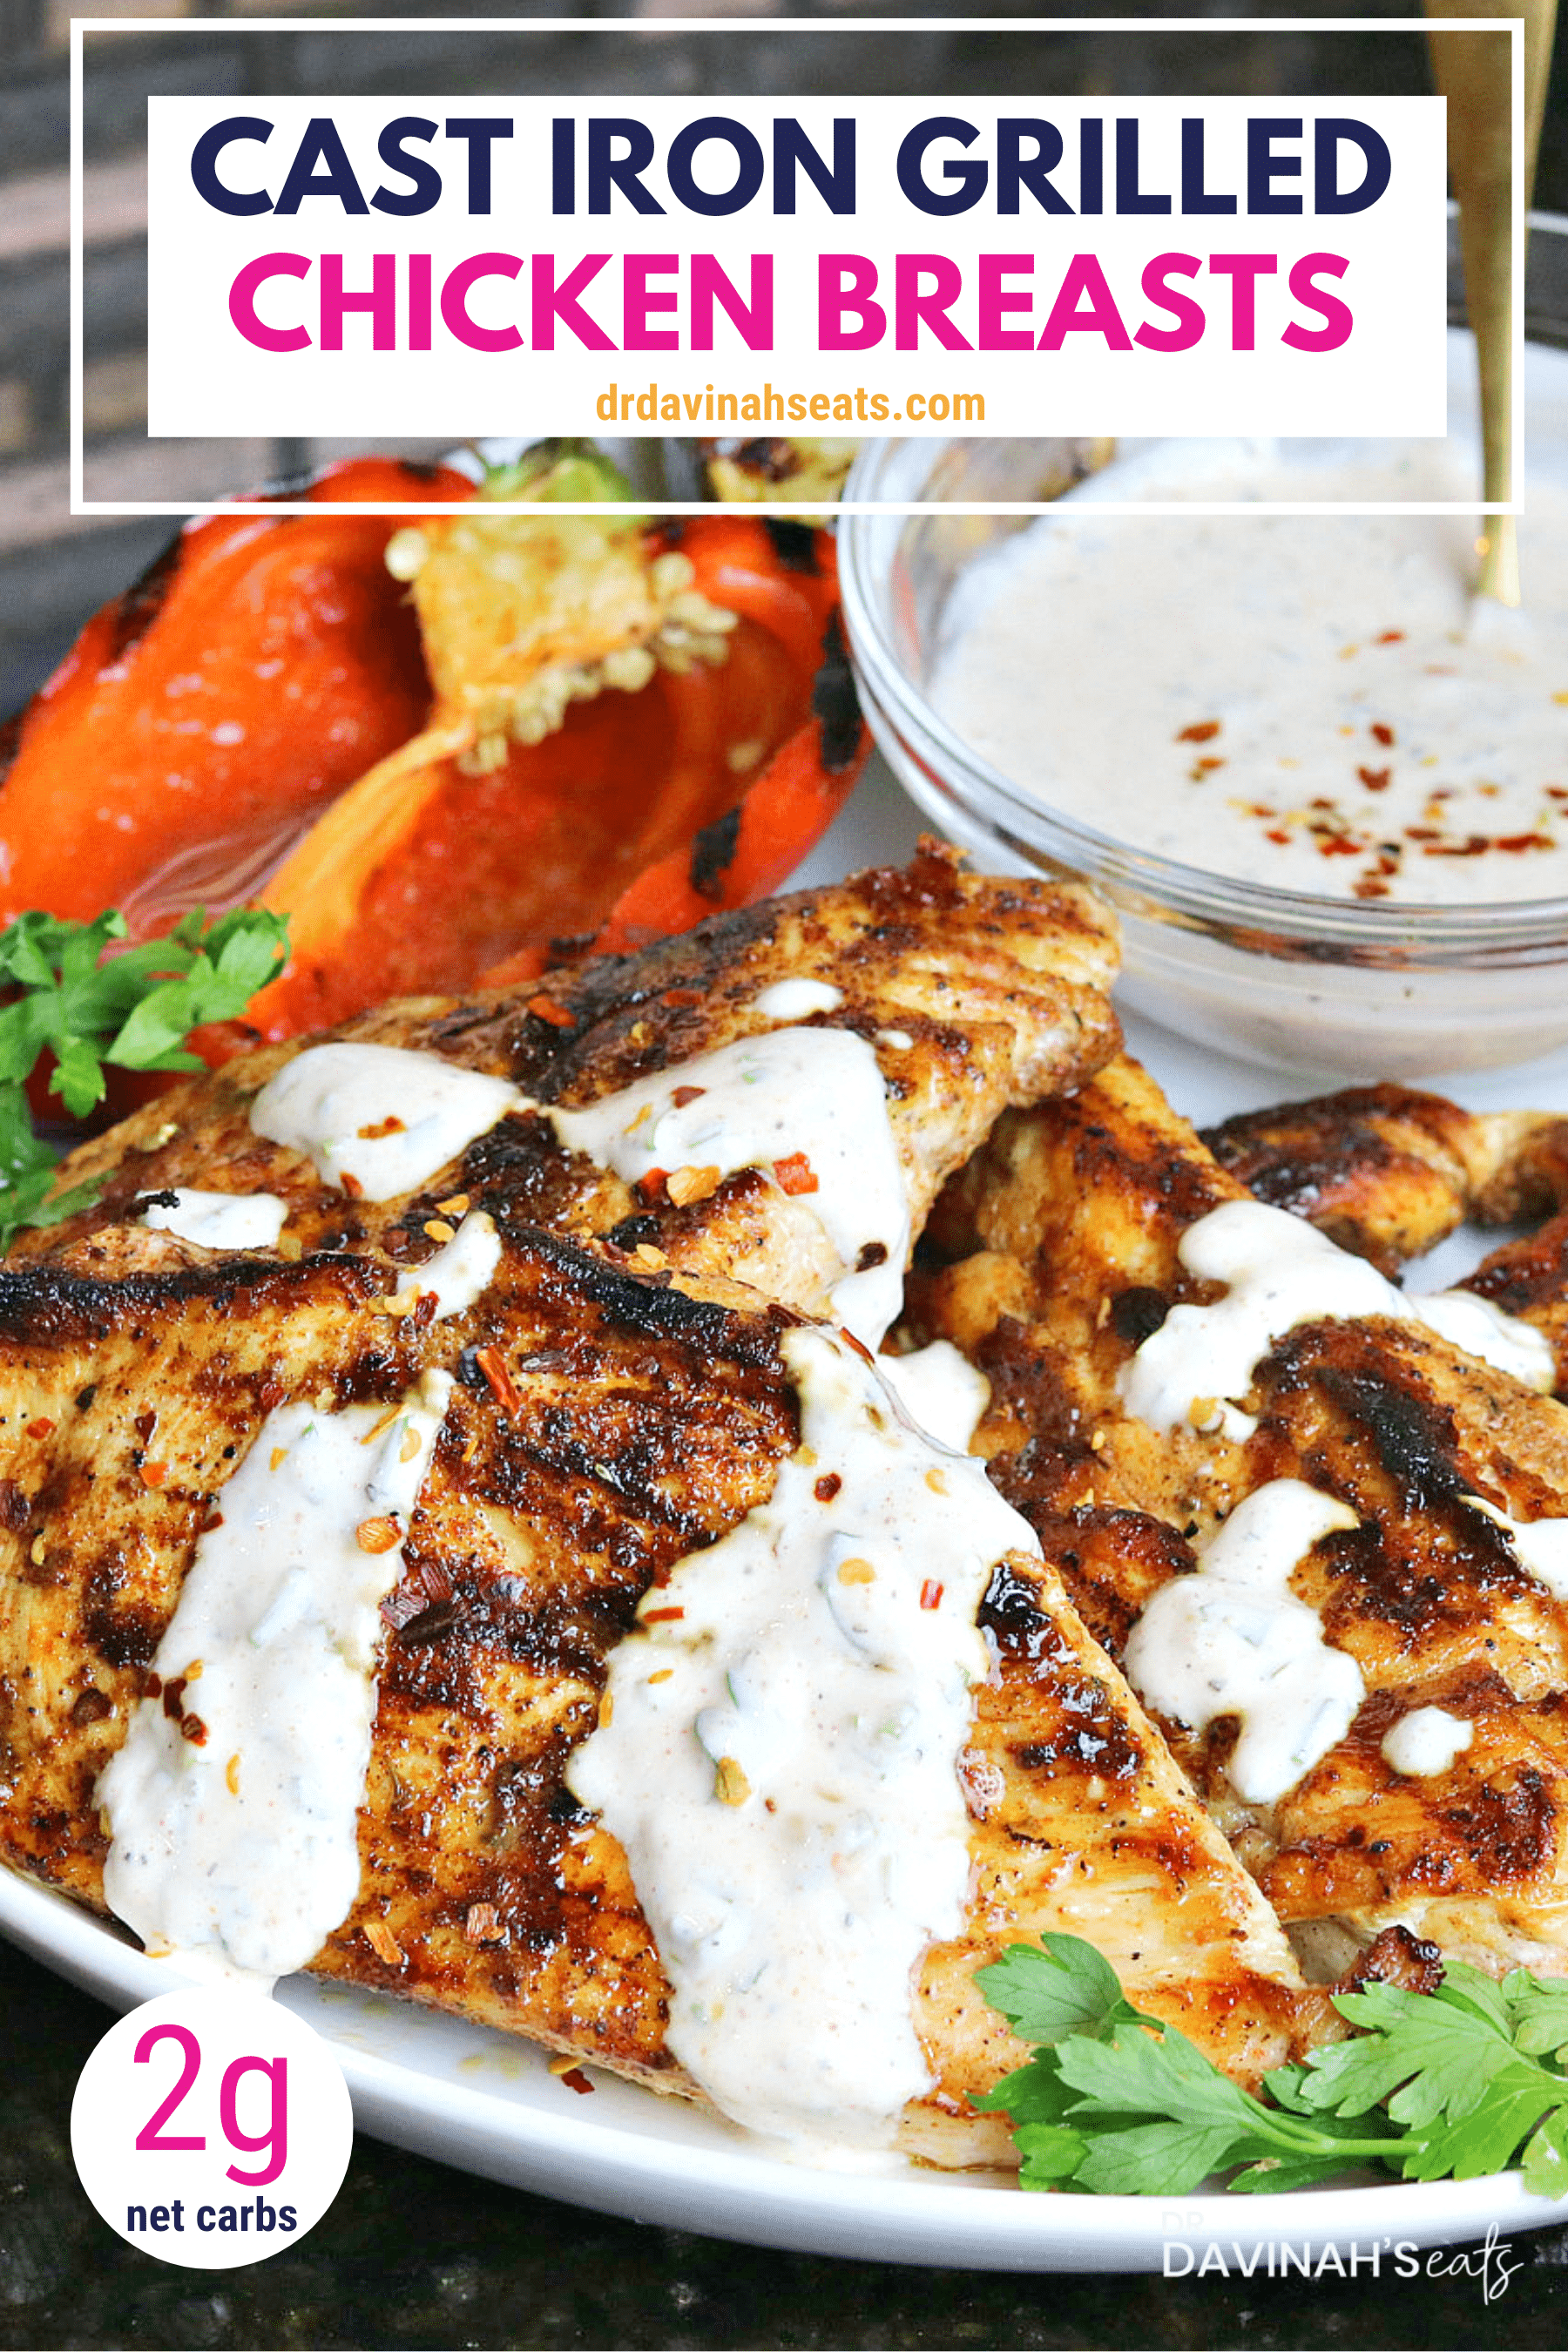 Pinterest image for Cast Iron Grilled Chicken Breasts